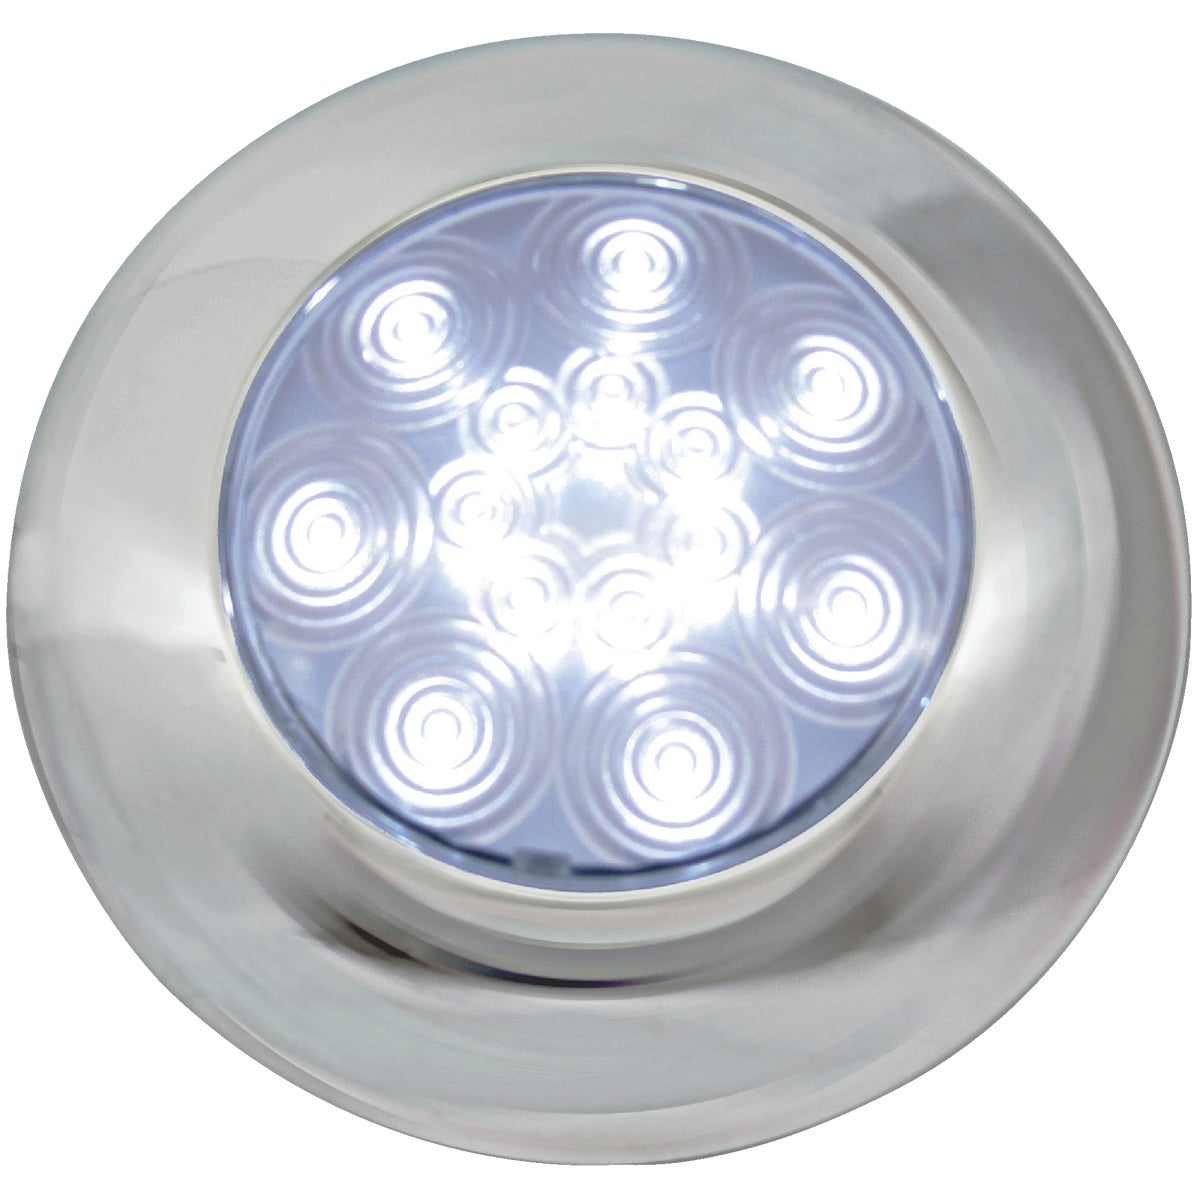 LED DOME/INTERIOR LIGHT - V381X by Peterson Mfg Co